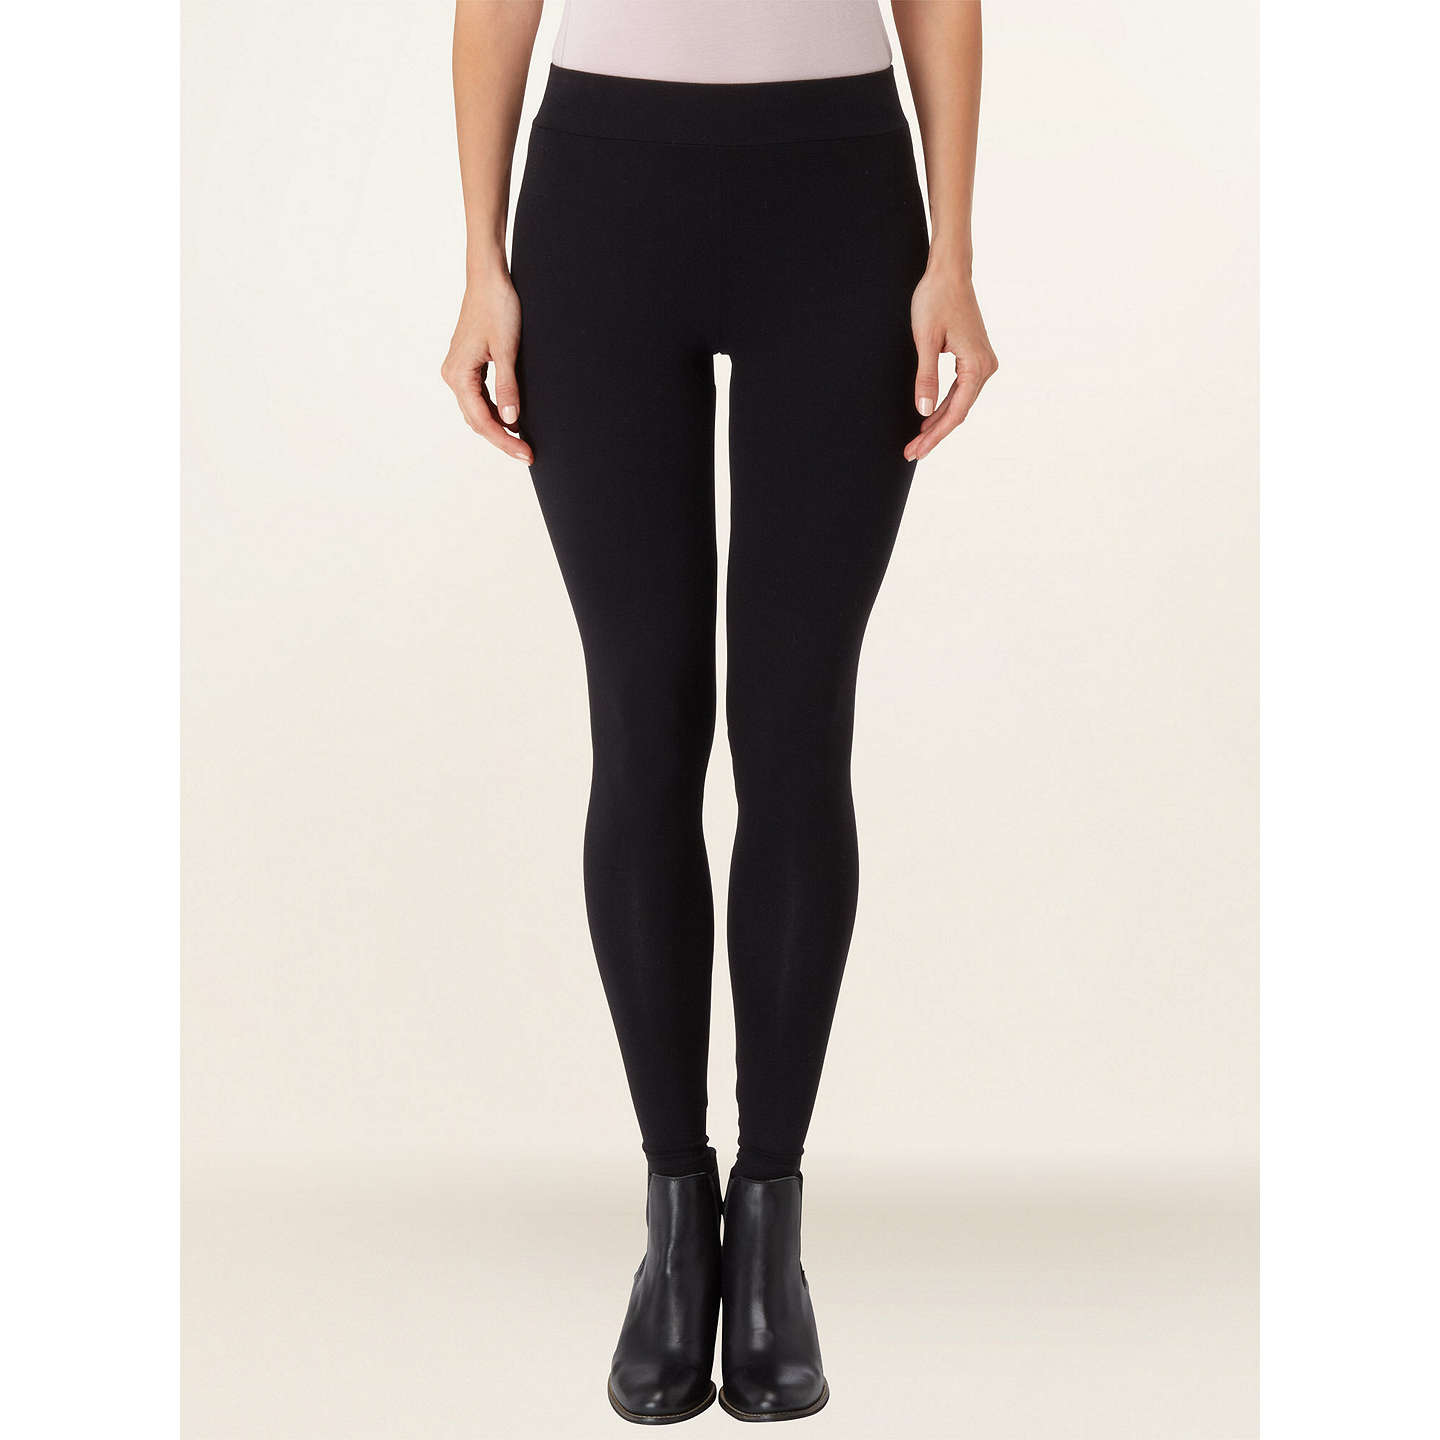 Phase Eight Lizzie Leggings, Black At John Lewis